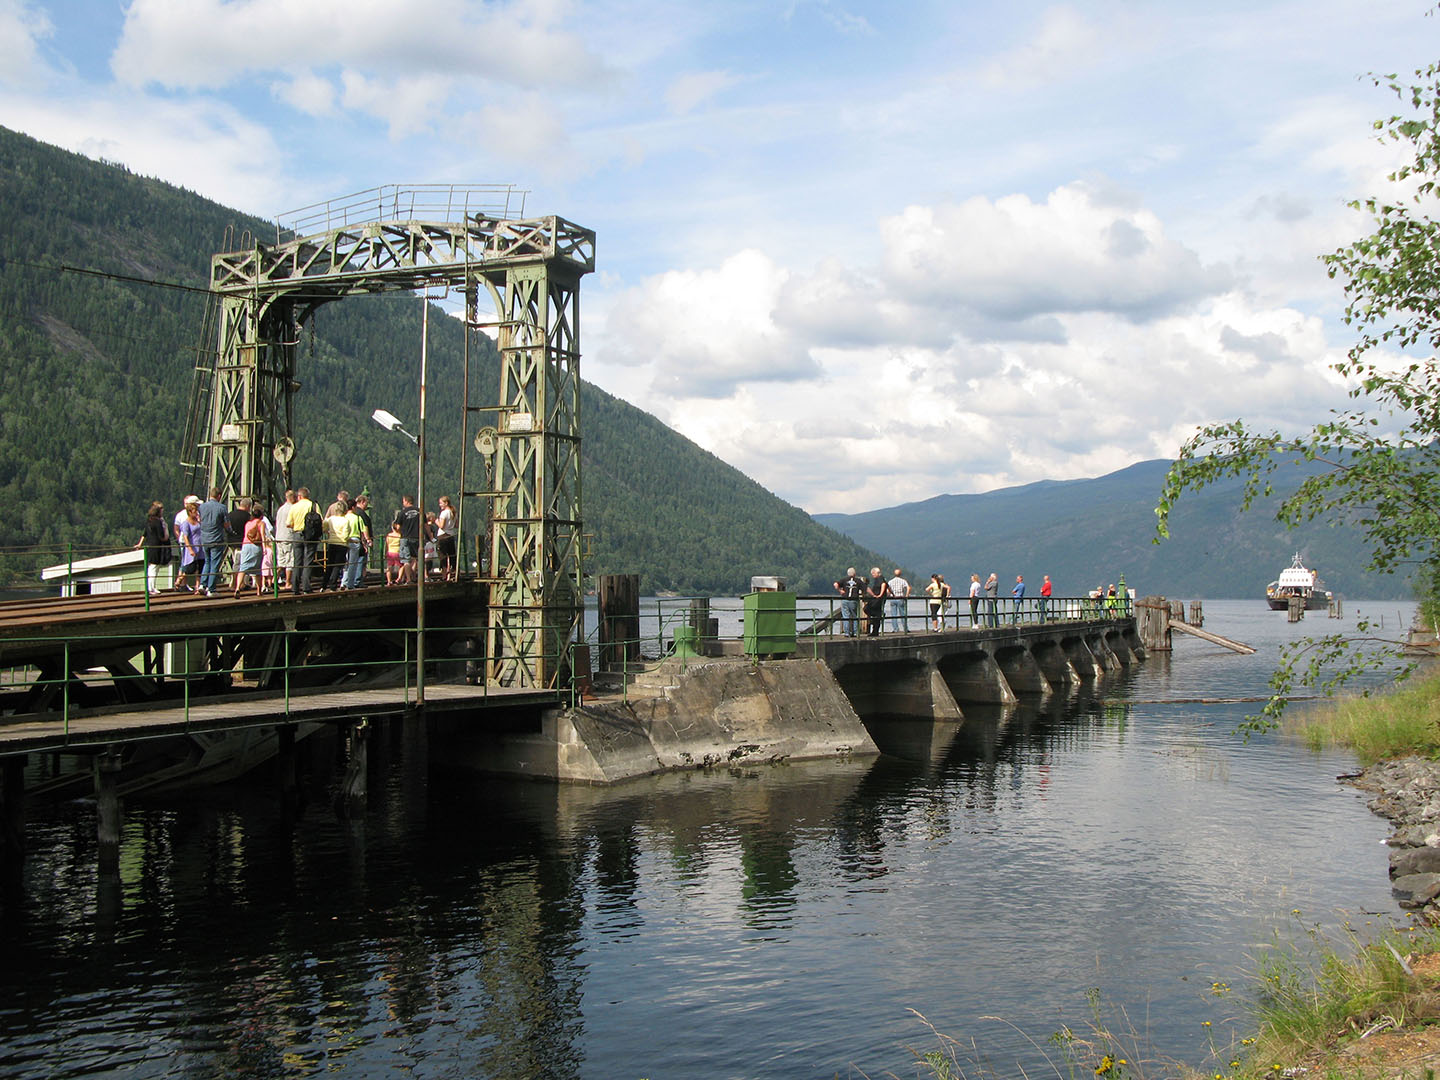 Ferry quay on the Rjukan Line. Photo: Sverre Nordmo, the Directorate for Cultural Heritage